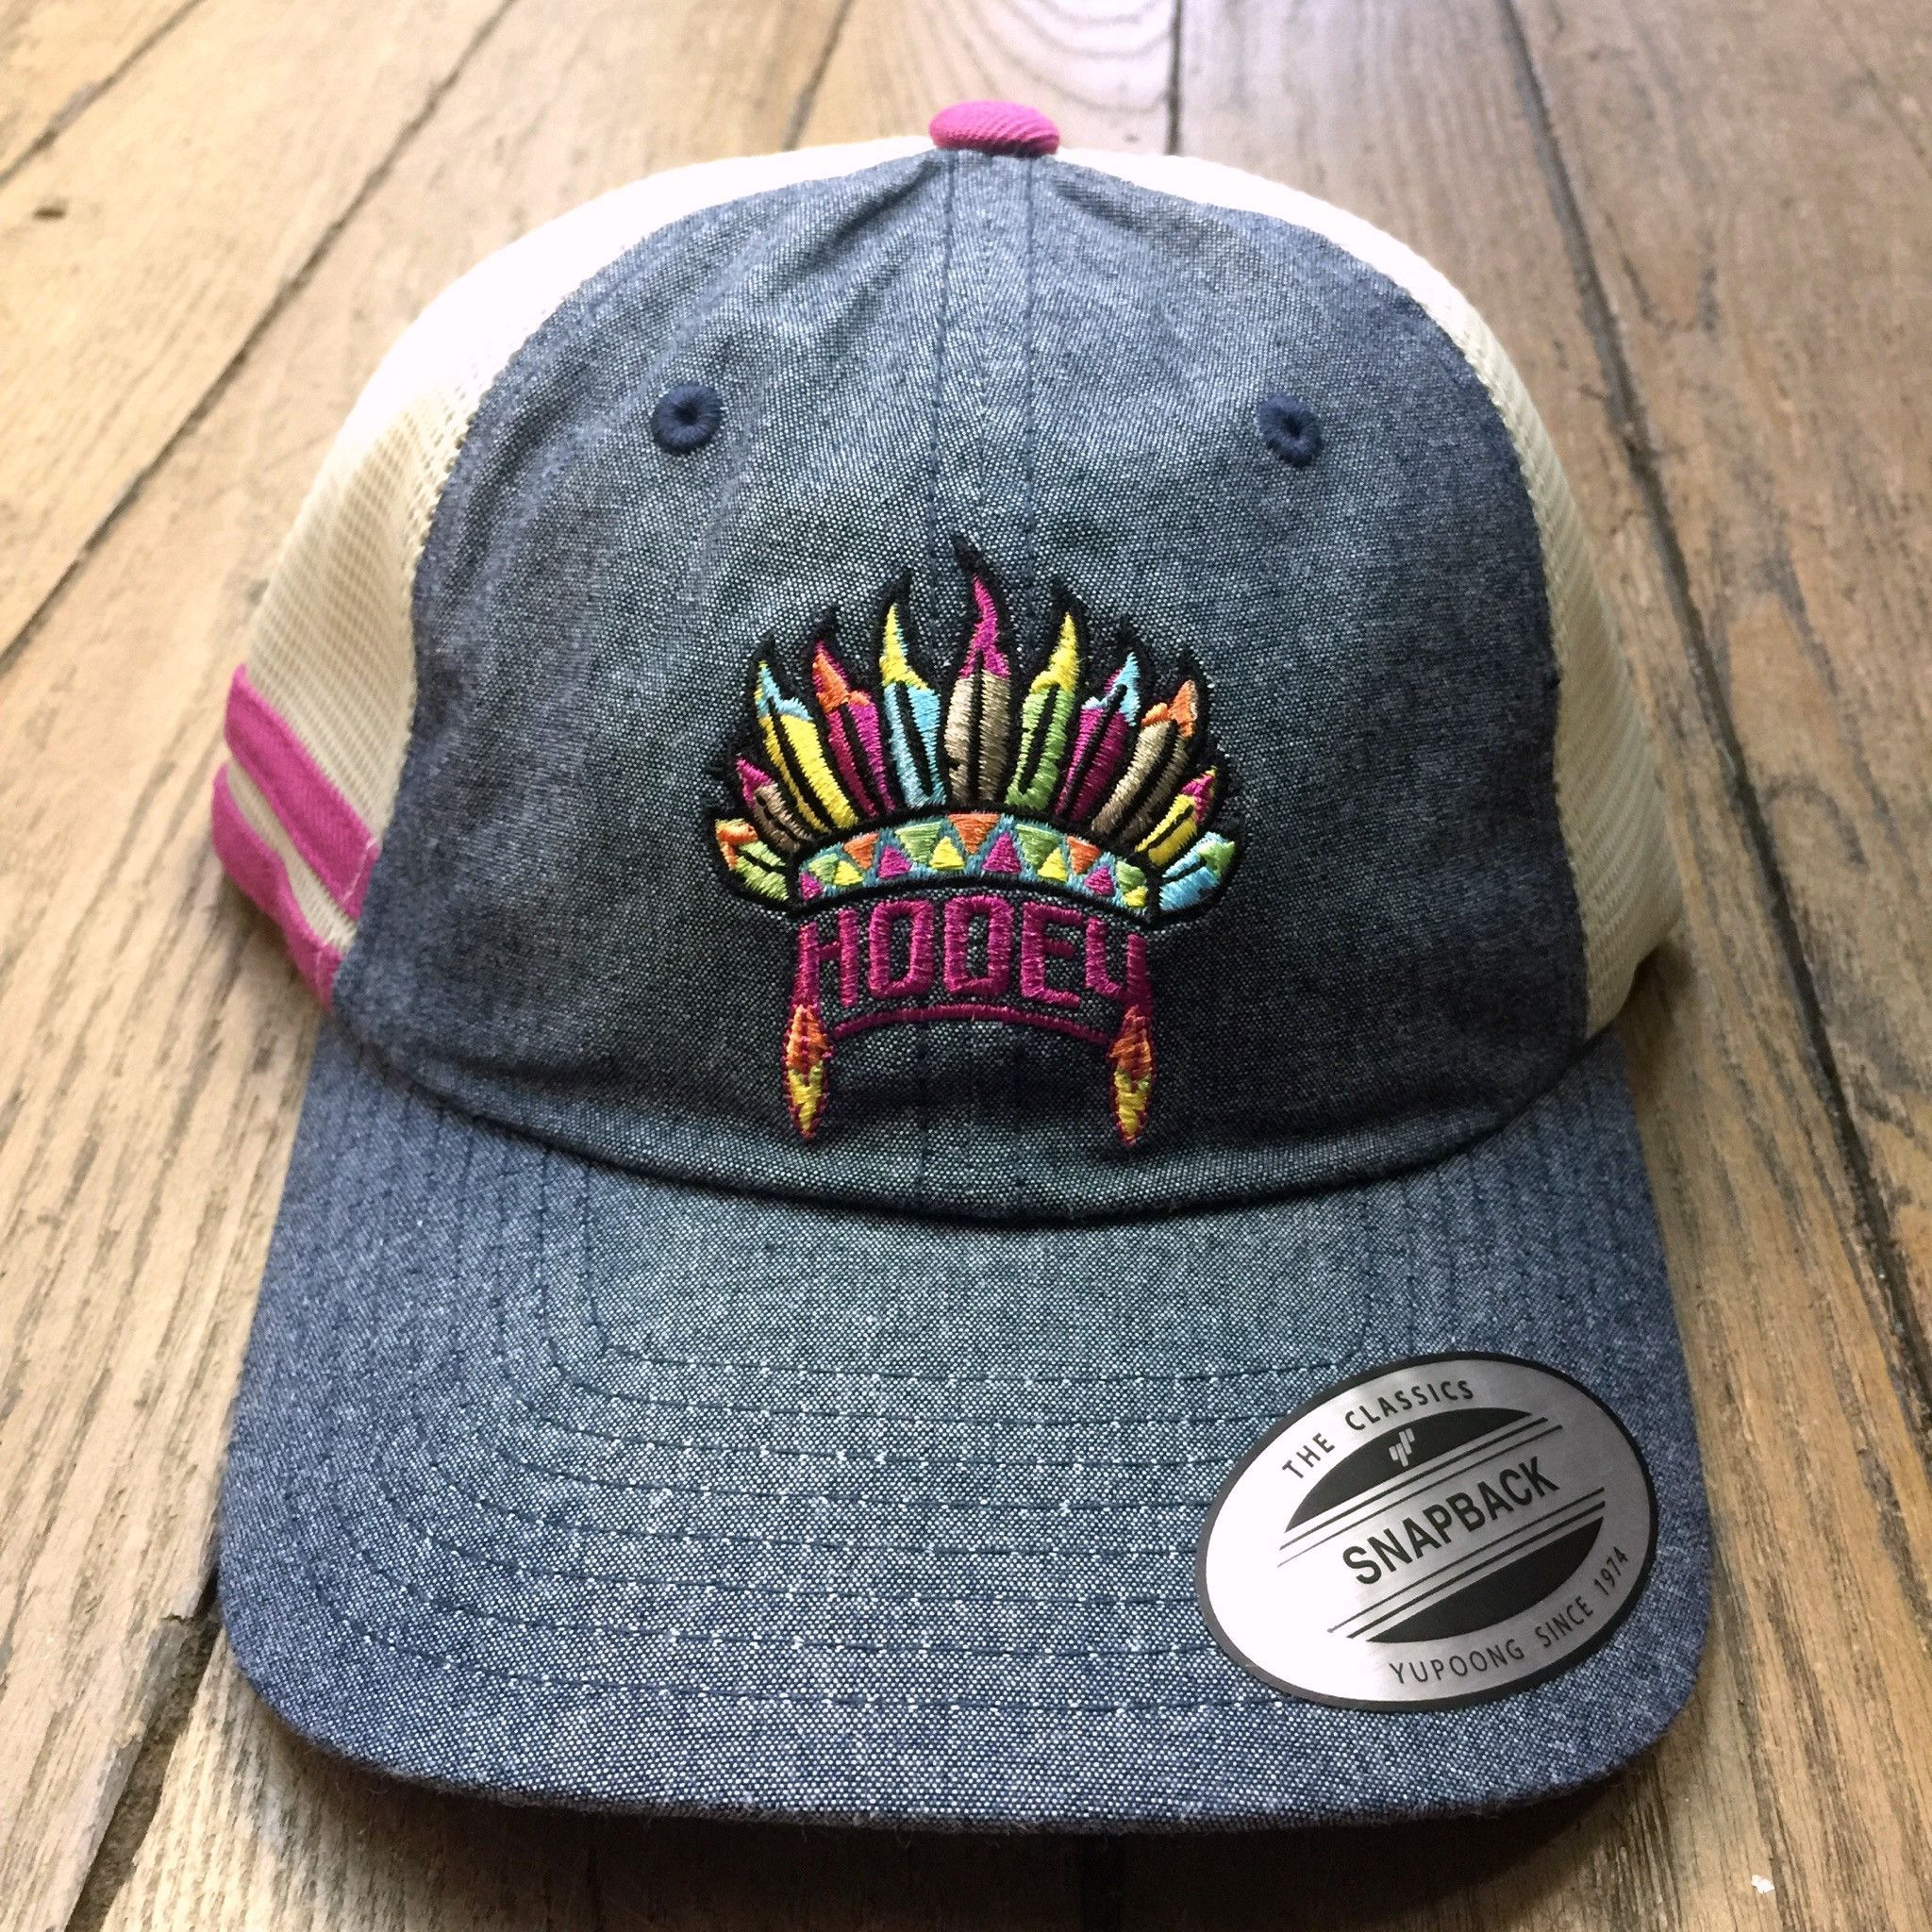 5da33f7636377 A cap from Hooey is what you need to show off your western edge and modern  style. This Girls  Trucker Hat is made from a rugged but comfortable  cotton poly ...